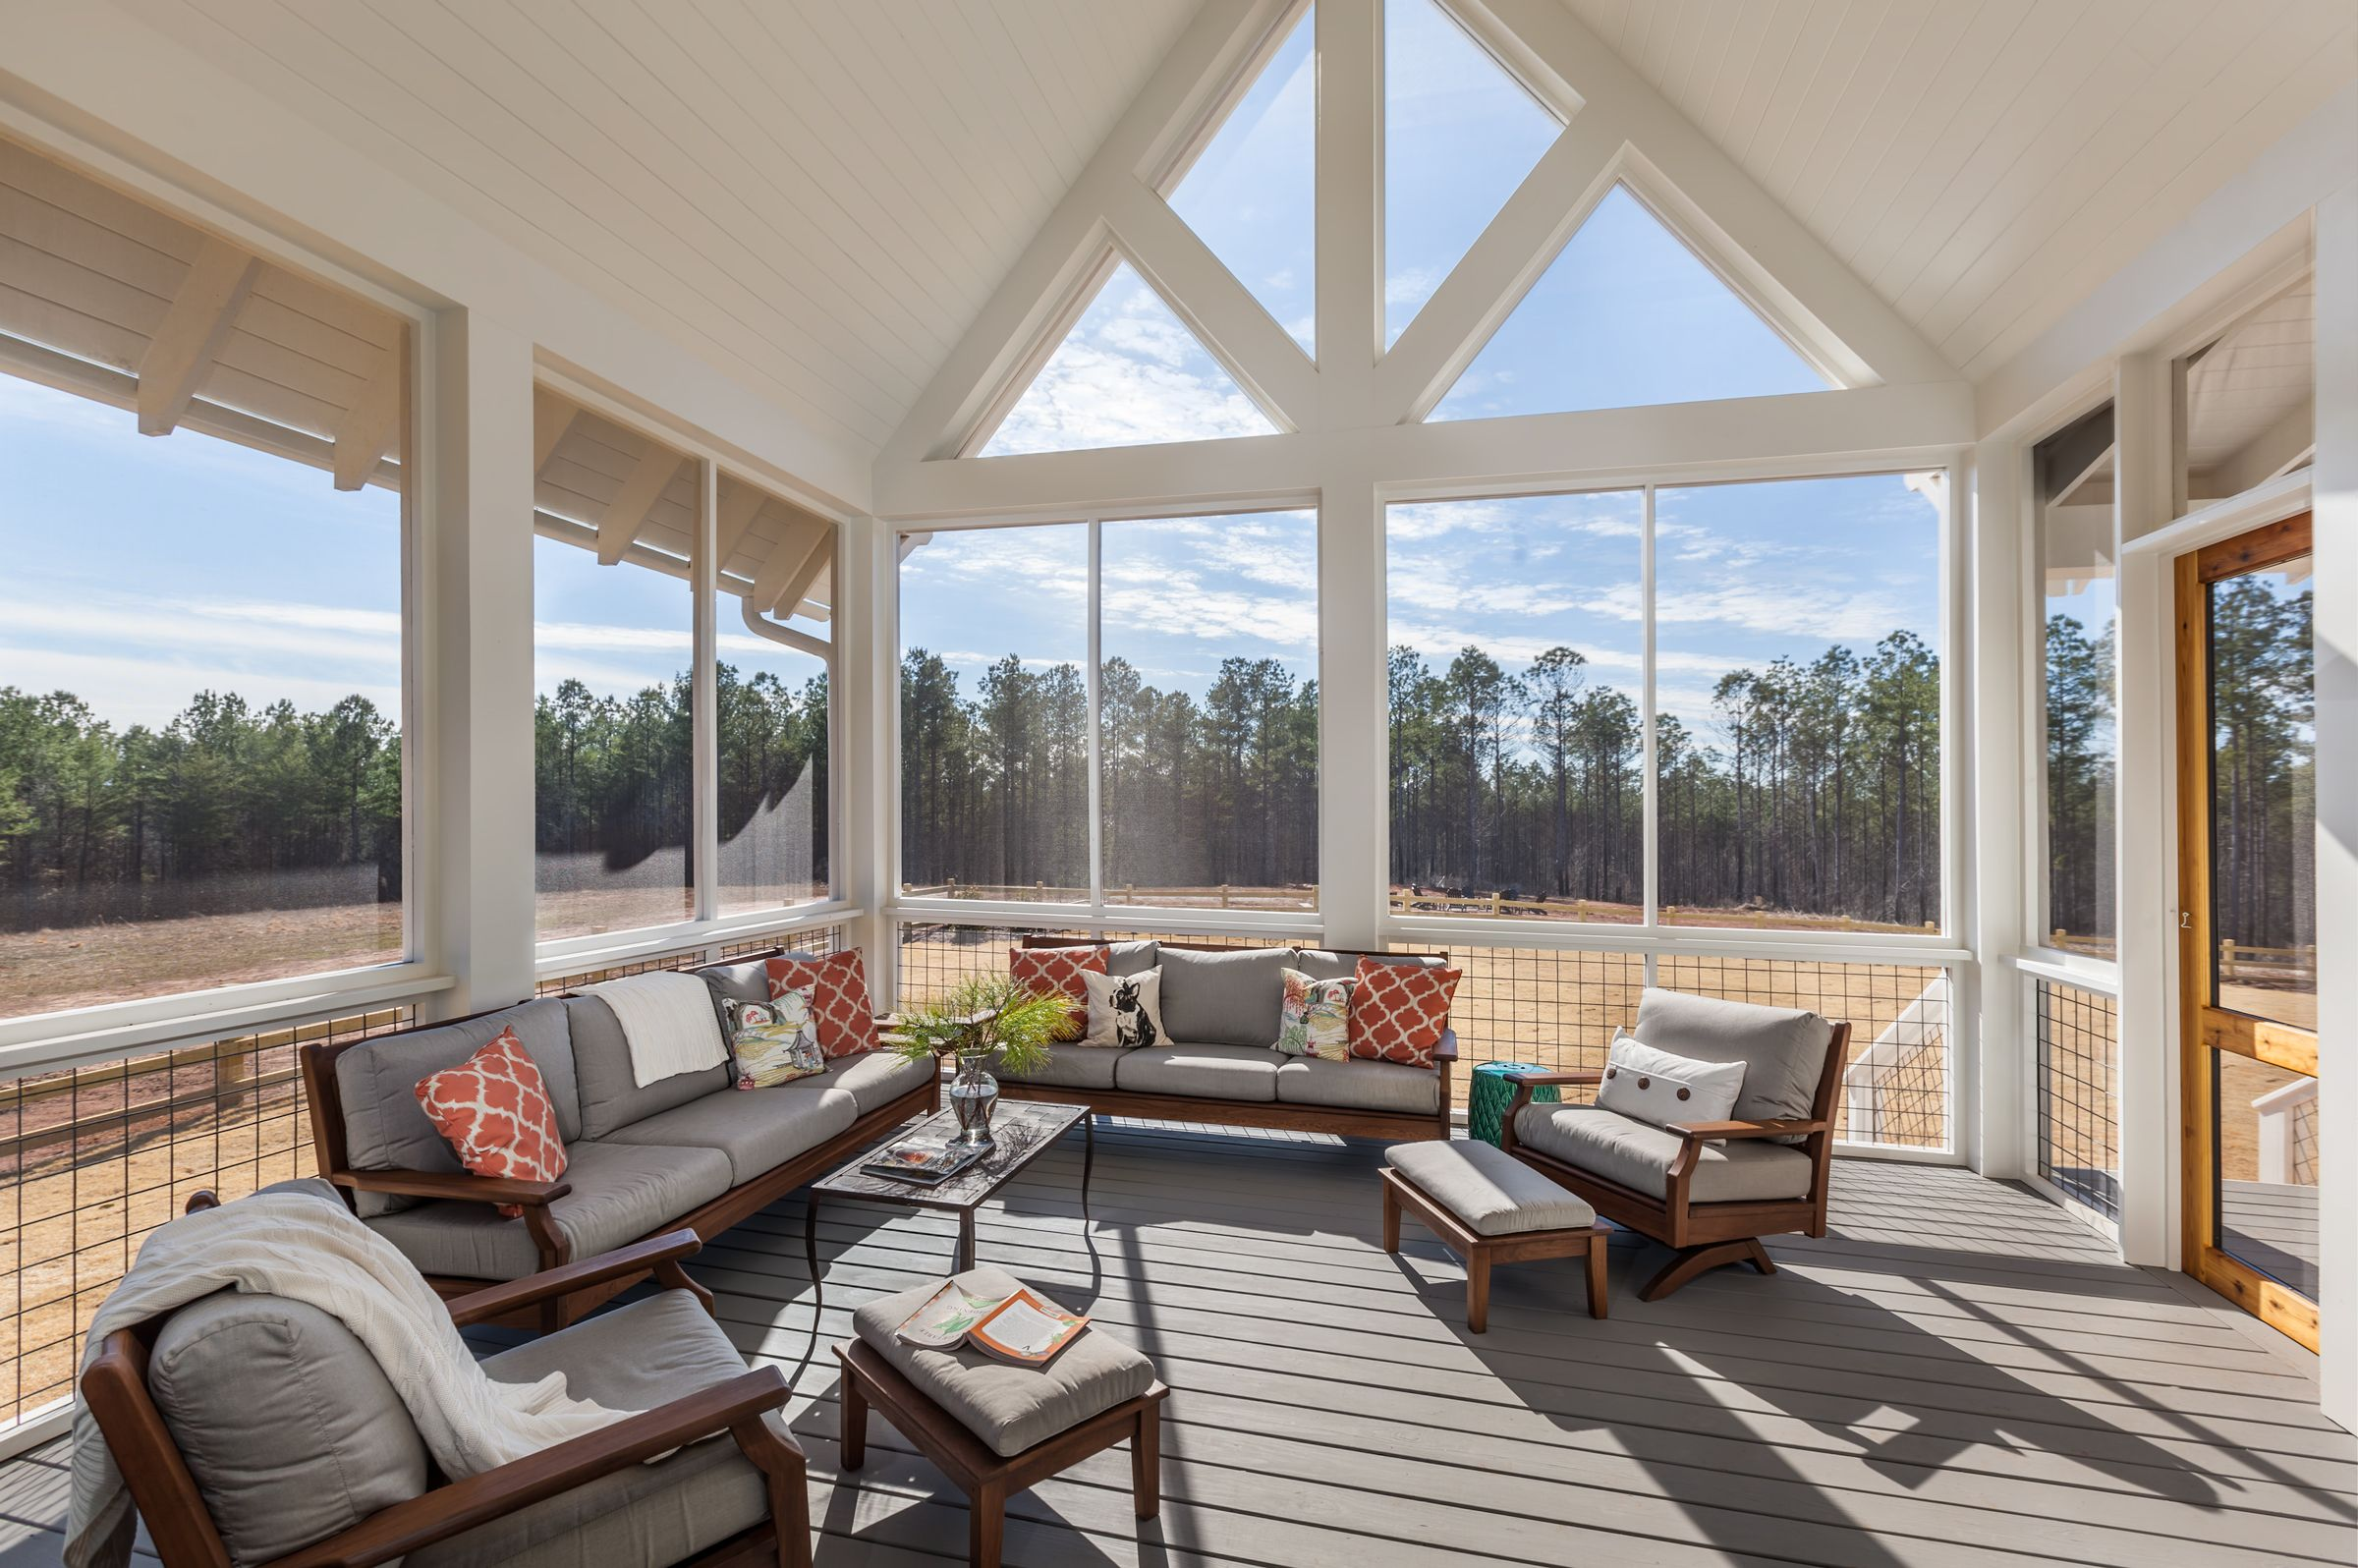 Vaulted Ceiling Screened Porch Is Created With Custom Touches And Easy To Maintain Materials The Beams And Colu Porch Cost Porch Design Screened In Porch Cost